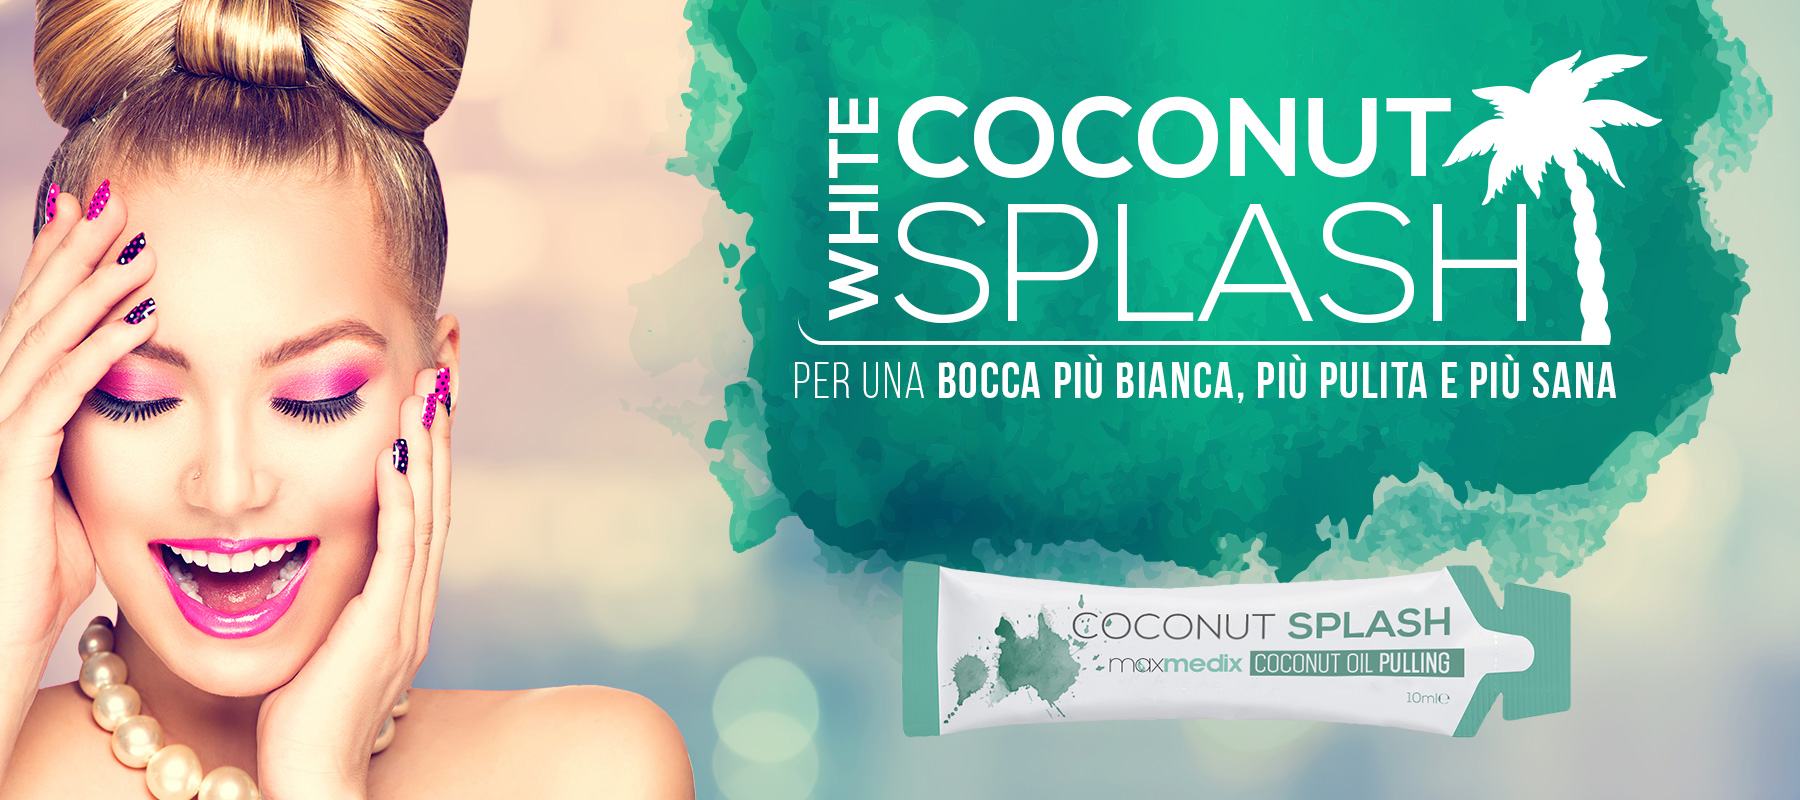 coconutsplash-it-banner-1